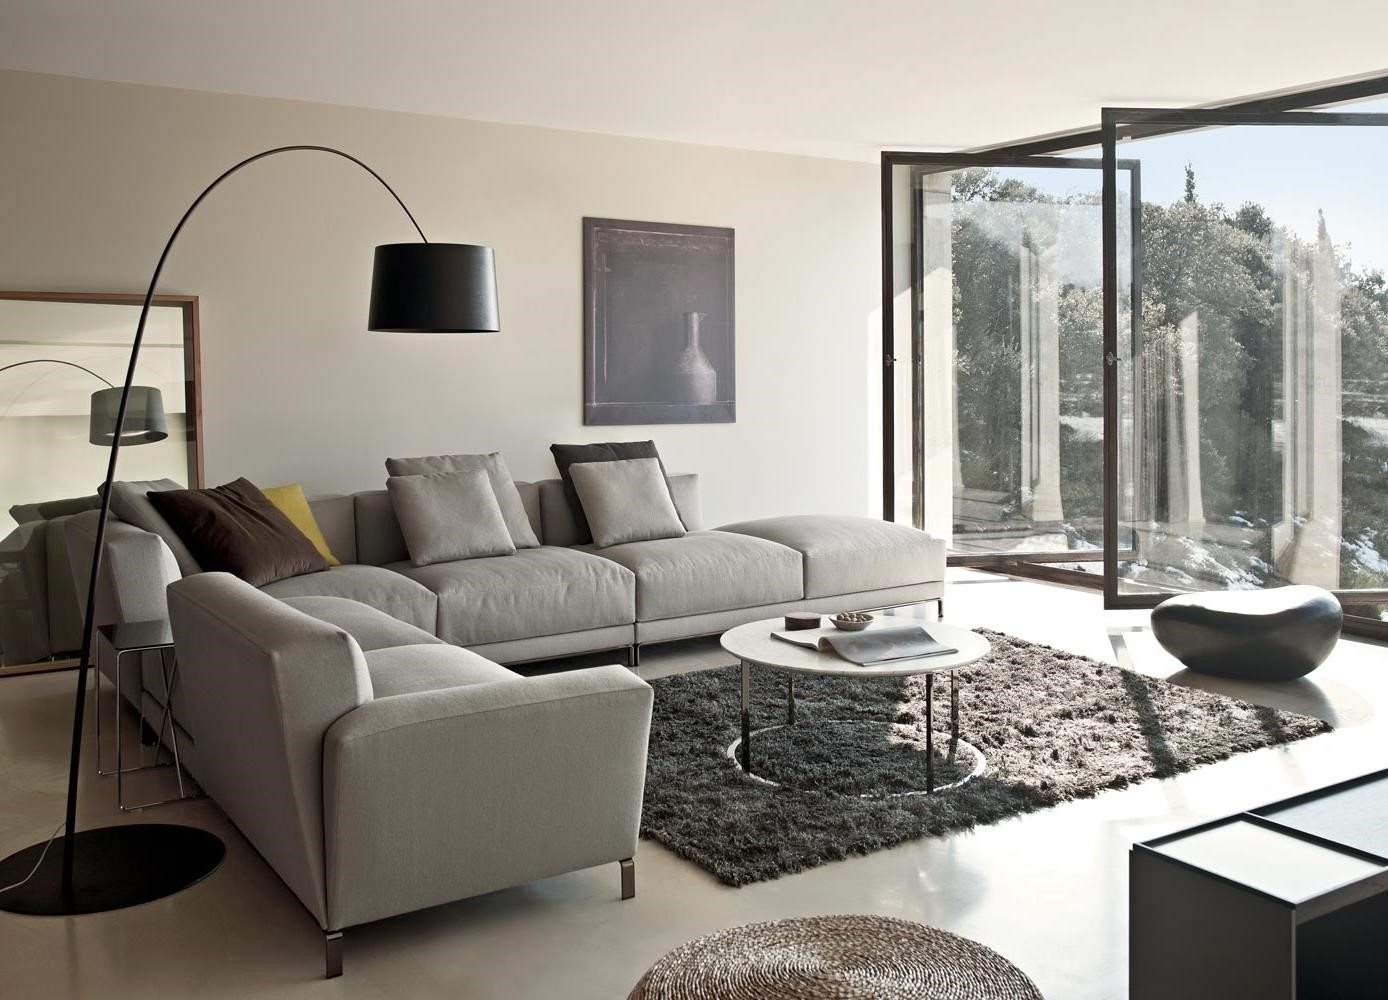 Uncategorized : Apartment Sectional Sofa Within Imposing Sofas For Apartment Sectional Sofas With Chaise (Image 10 of 10)